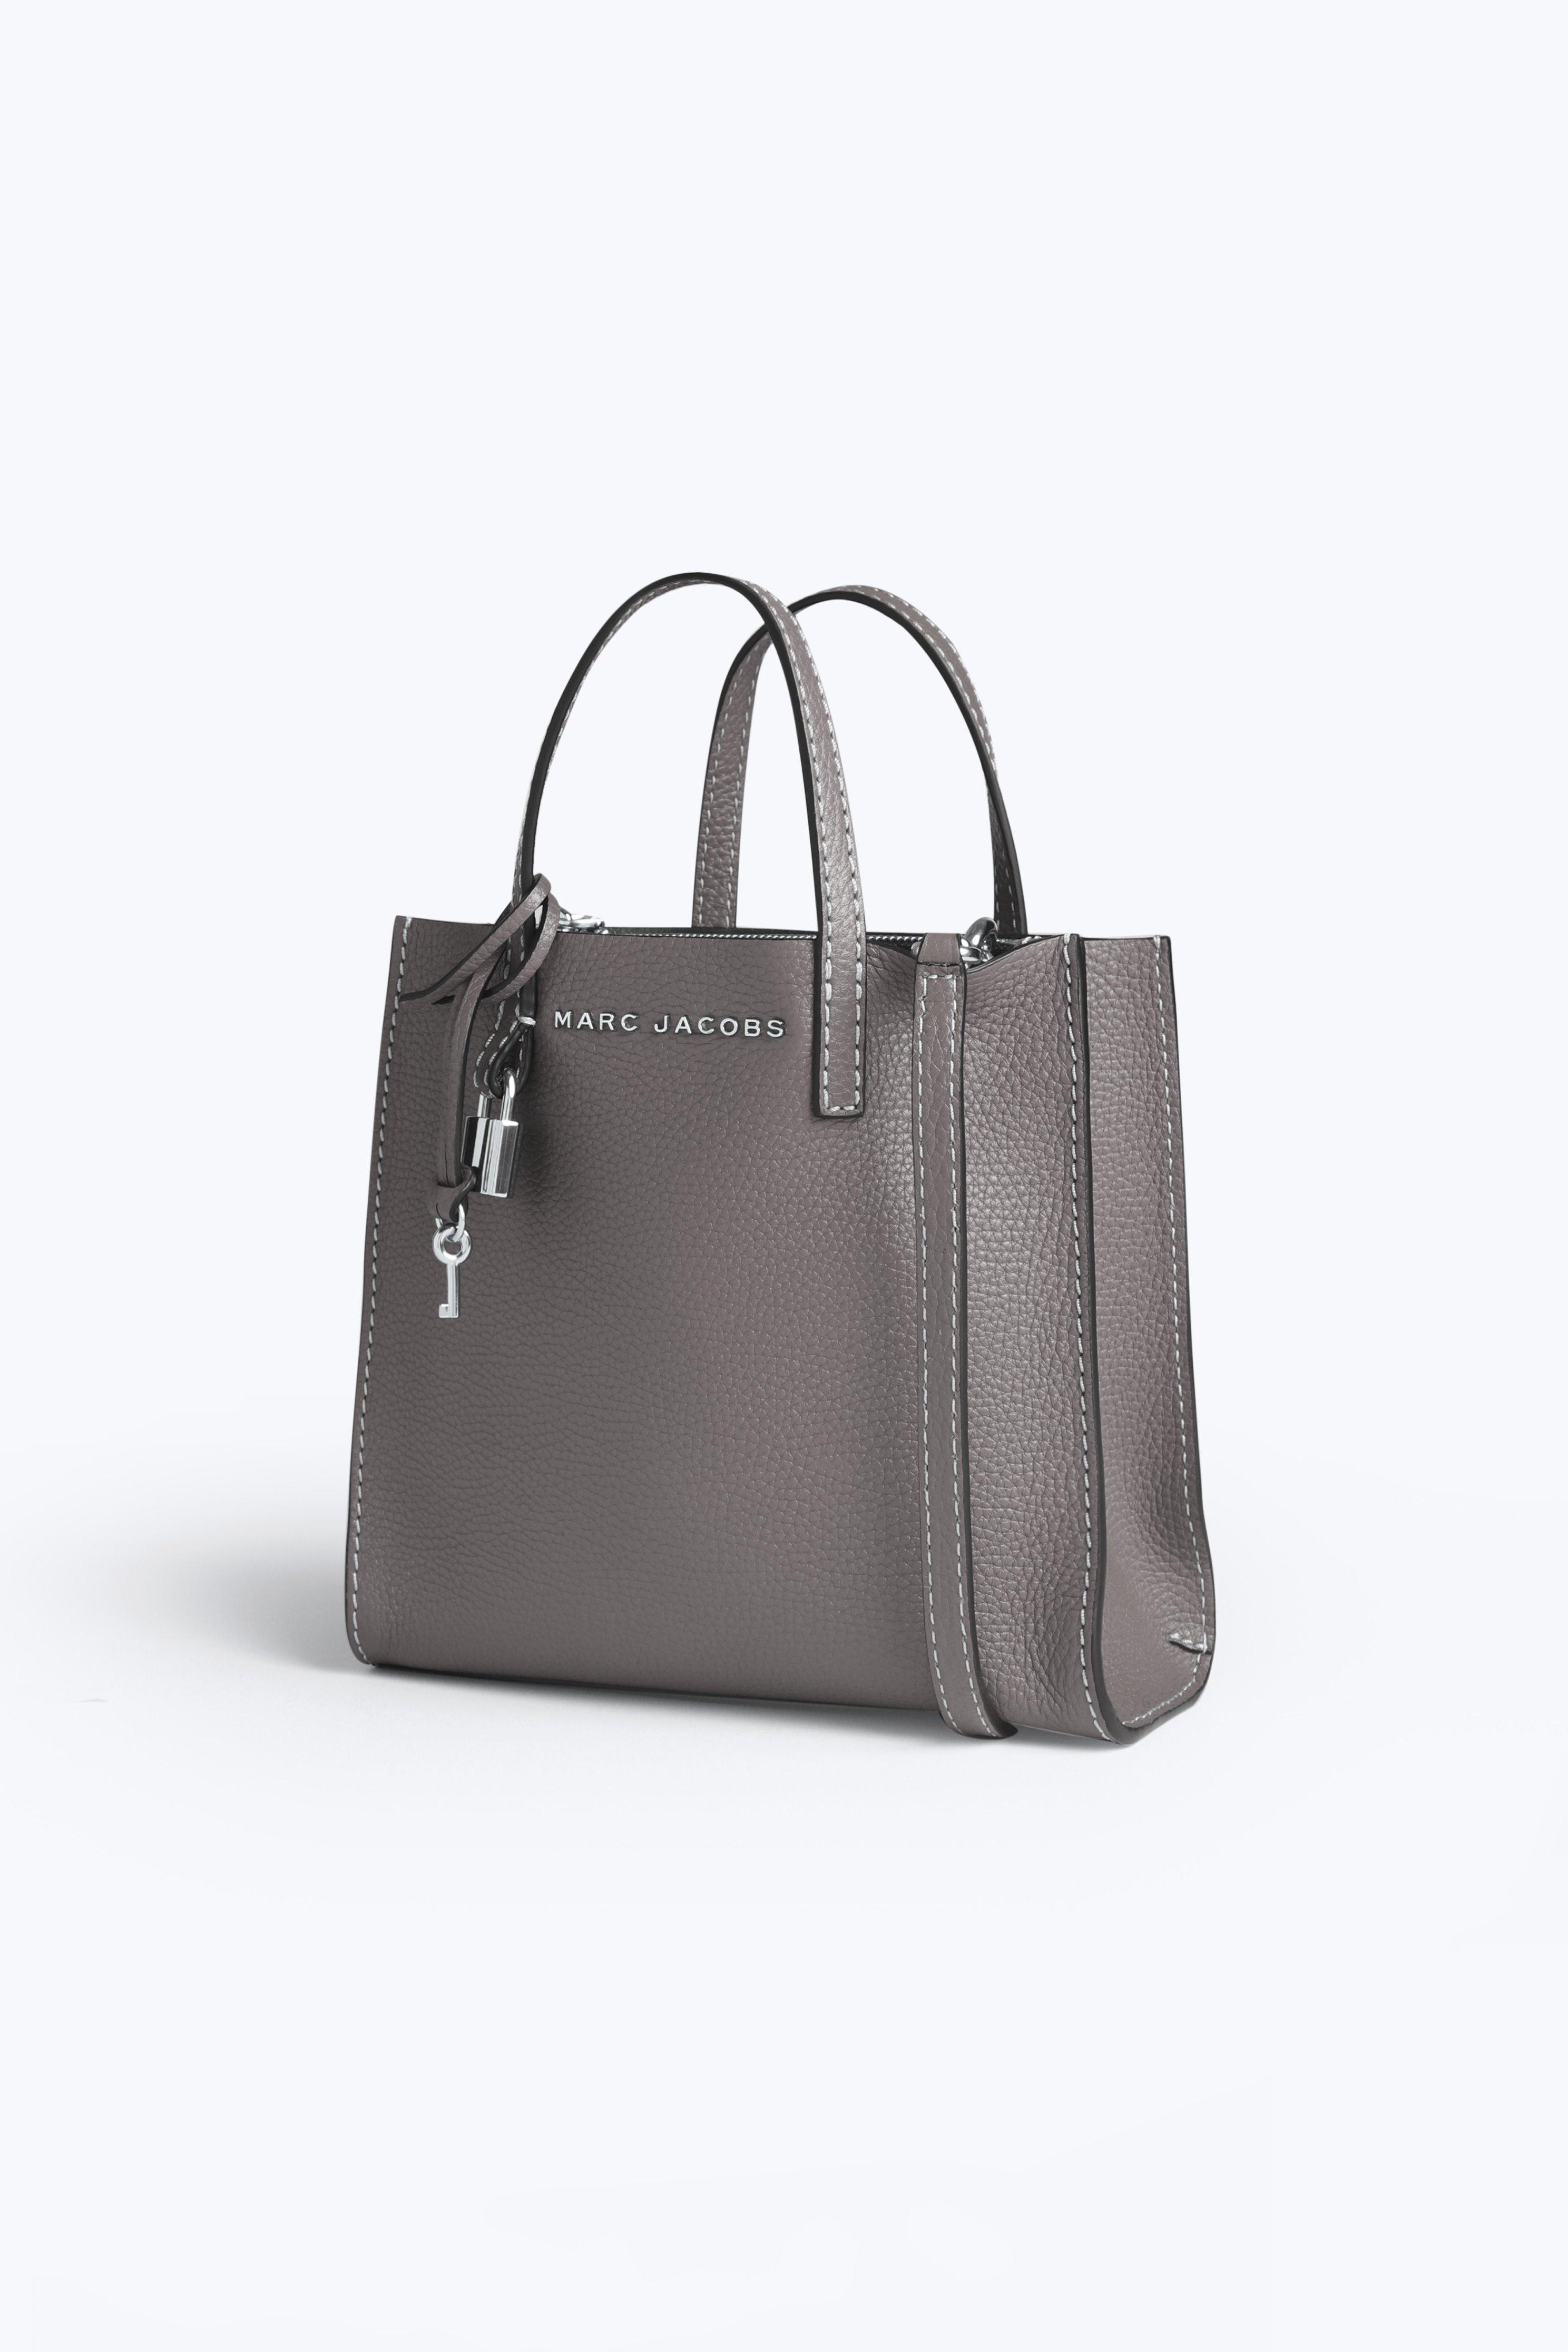 Grey The Grind Bag Marc Jacobs e7ywhoT